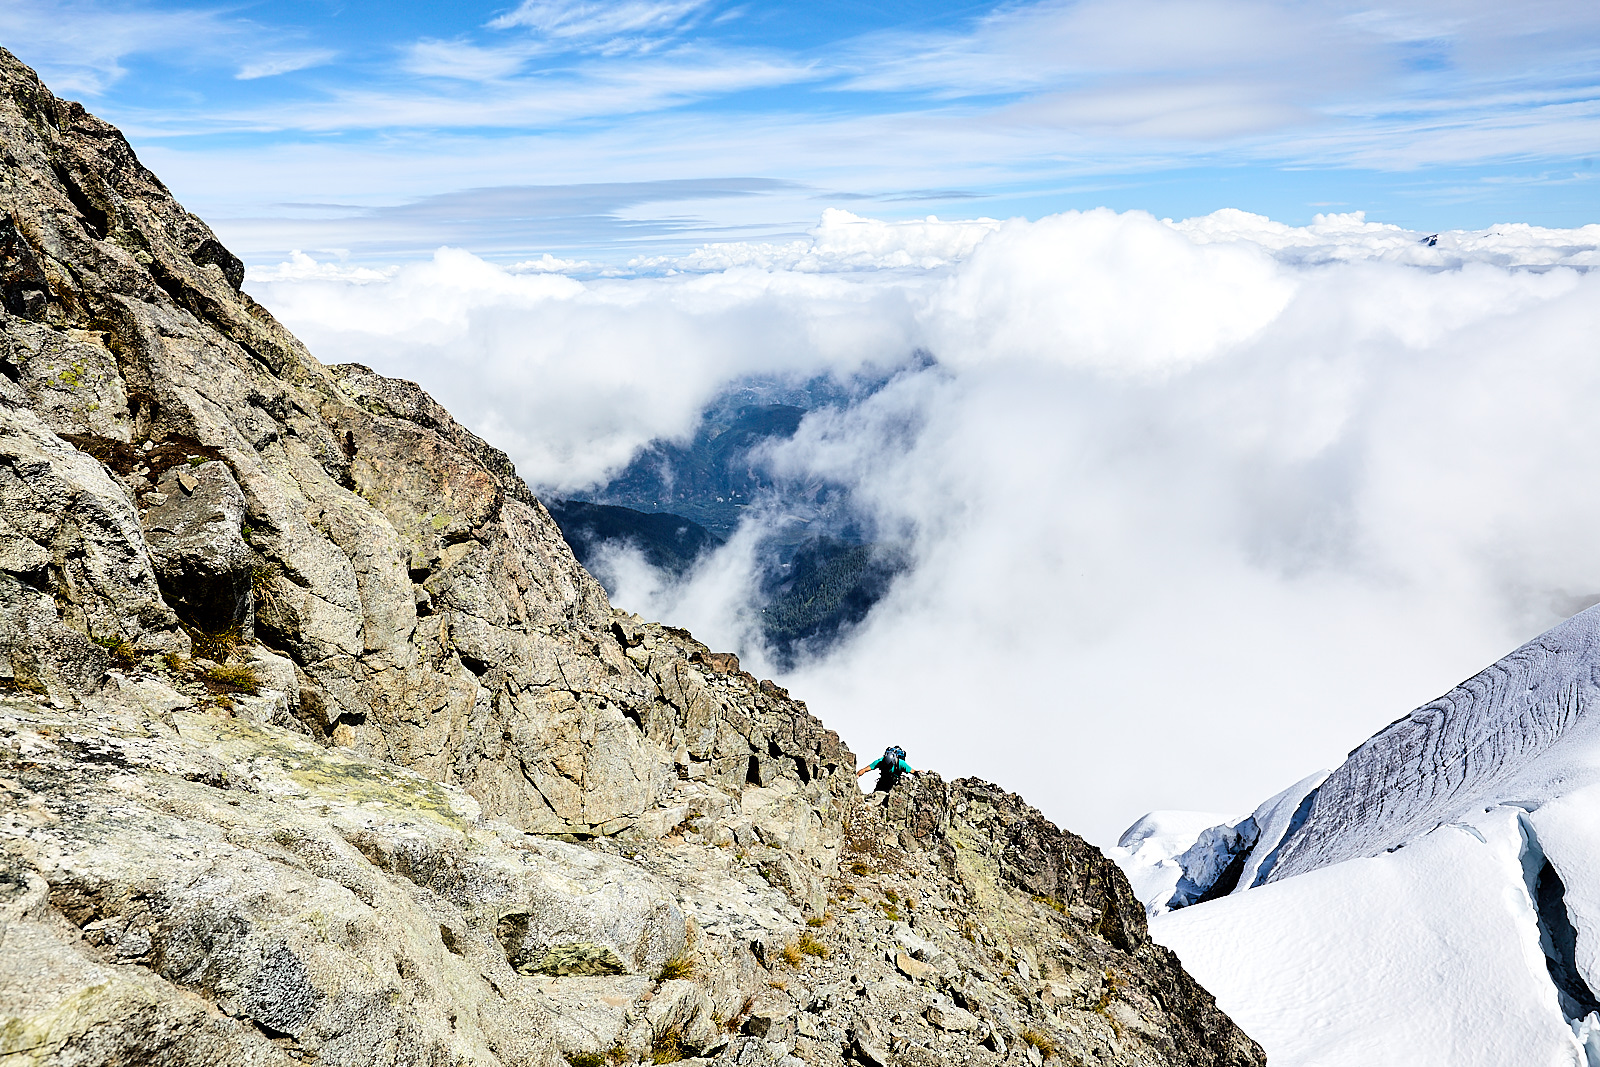 As we approached the summit of Dionne, the clouds started rolling in up high.